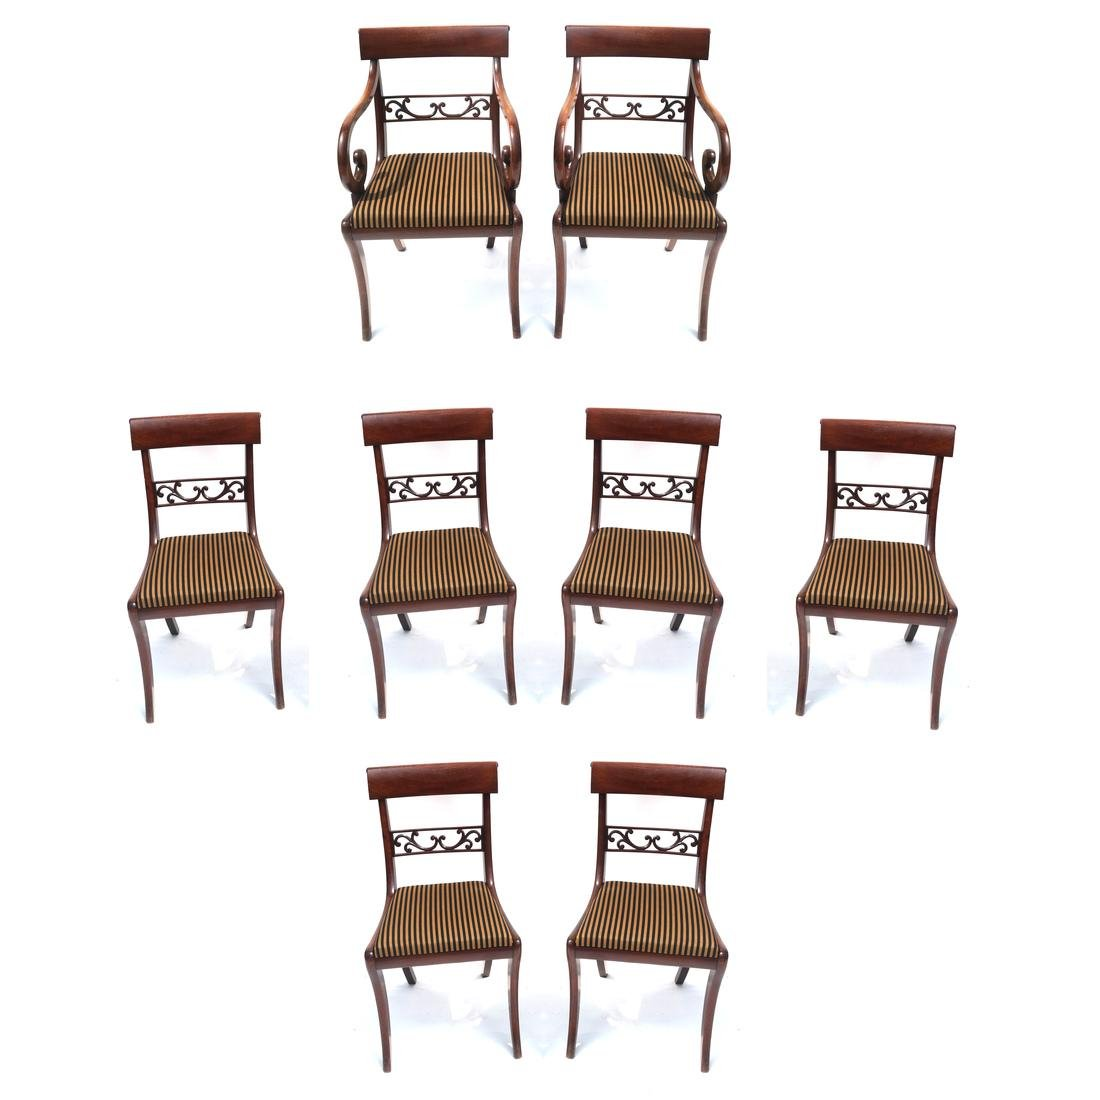 12 Regency-Style Dining Chairs